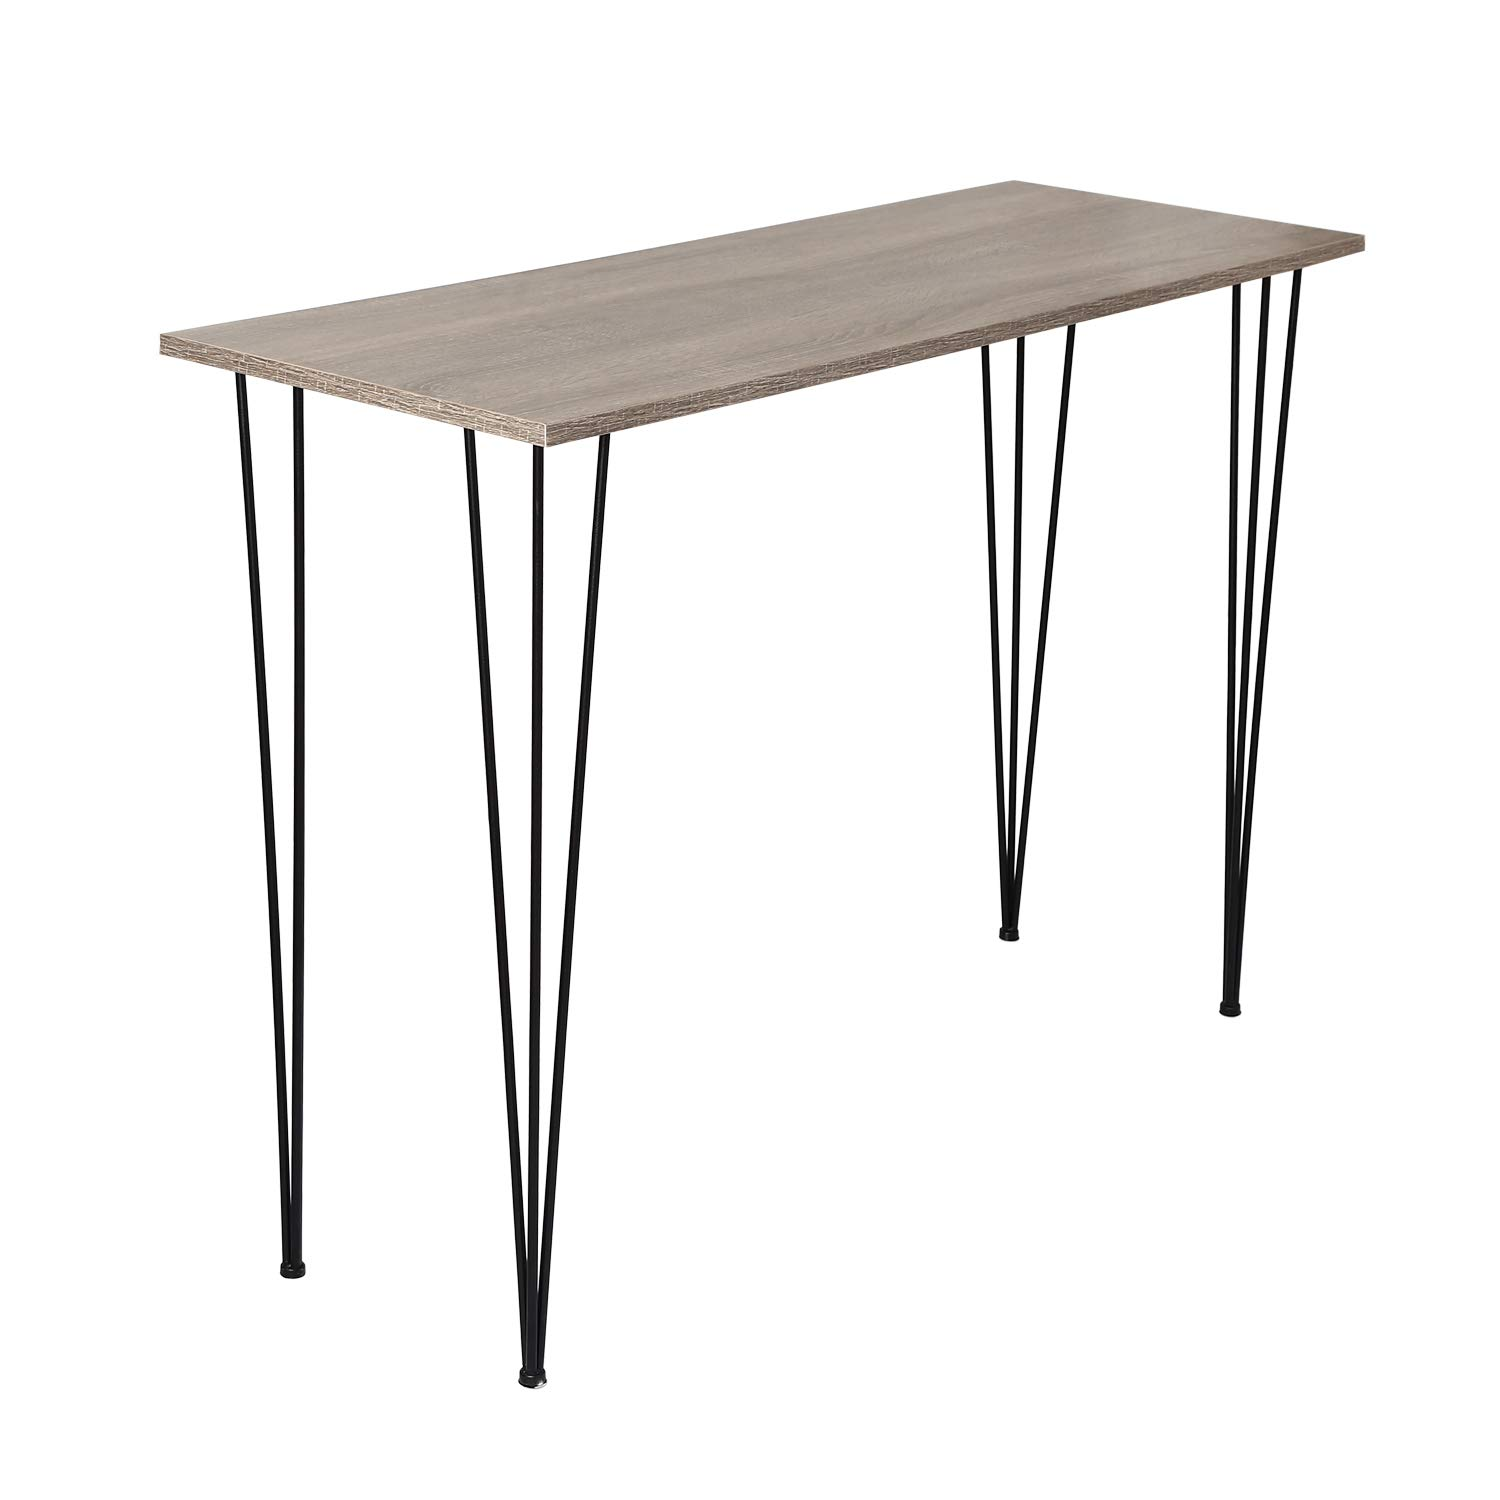 Adeco Console Tables, Modern Studio Collection, Rectangular Entryway/Sofa Tables for Living Room Or Hallway, Wood Table Top, 44x15x32 Inches, Brown by Adeco